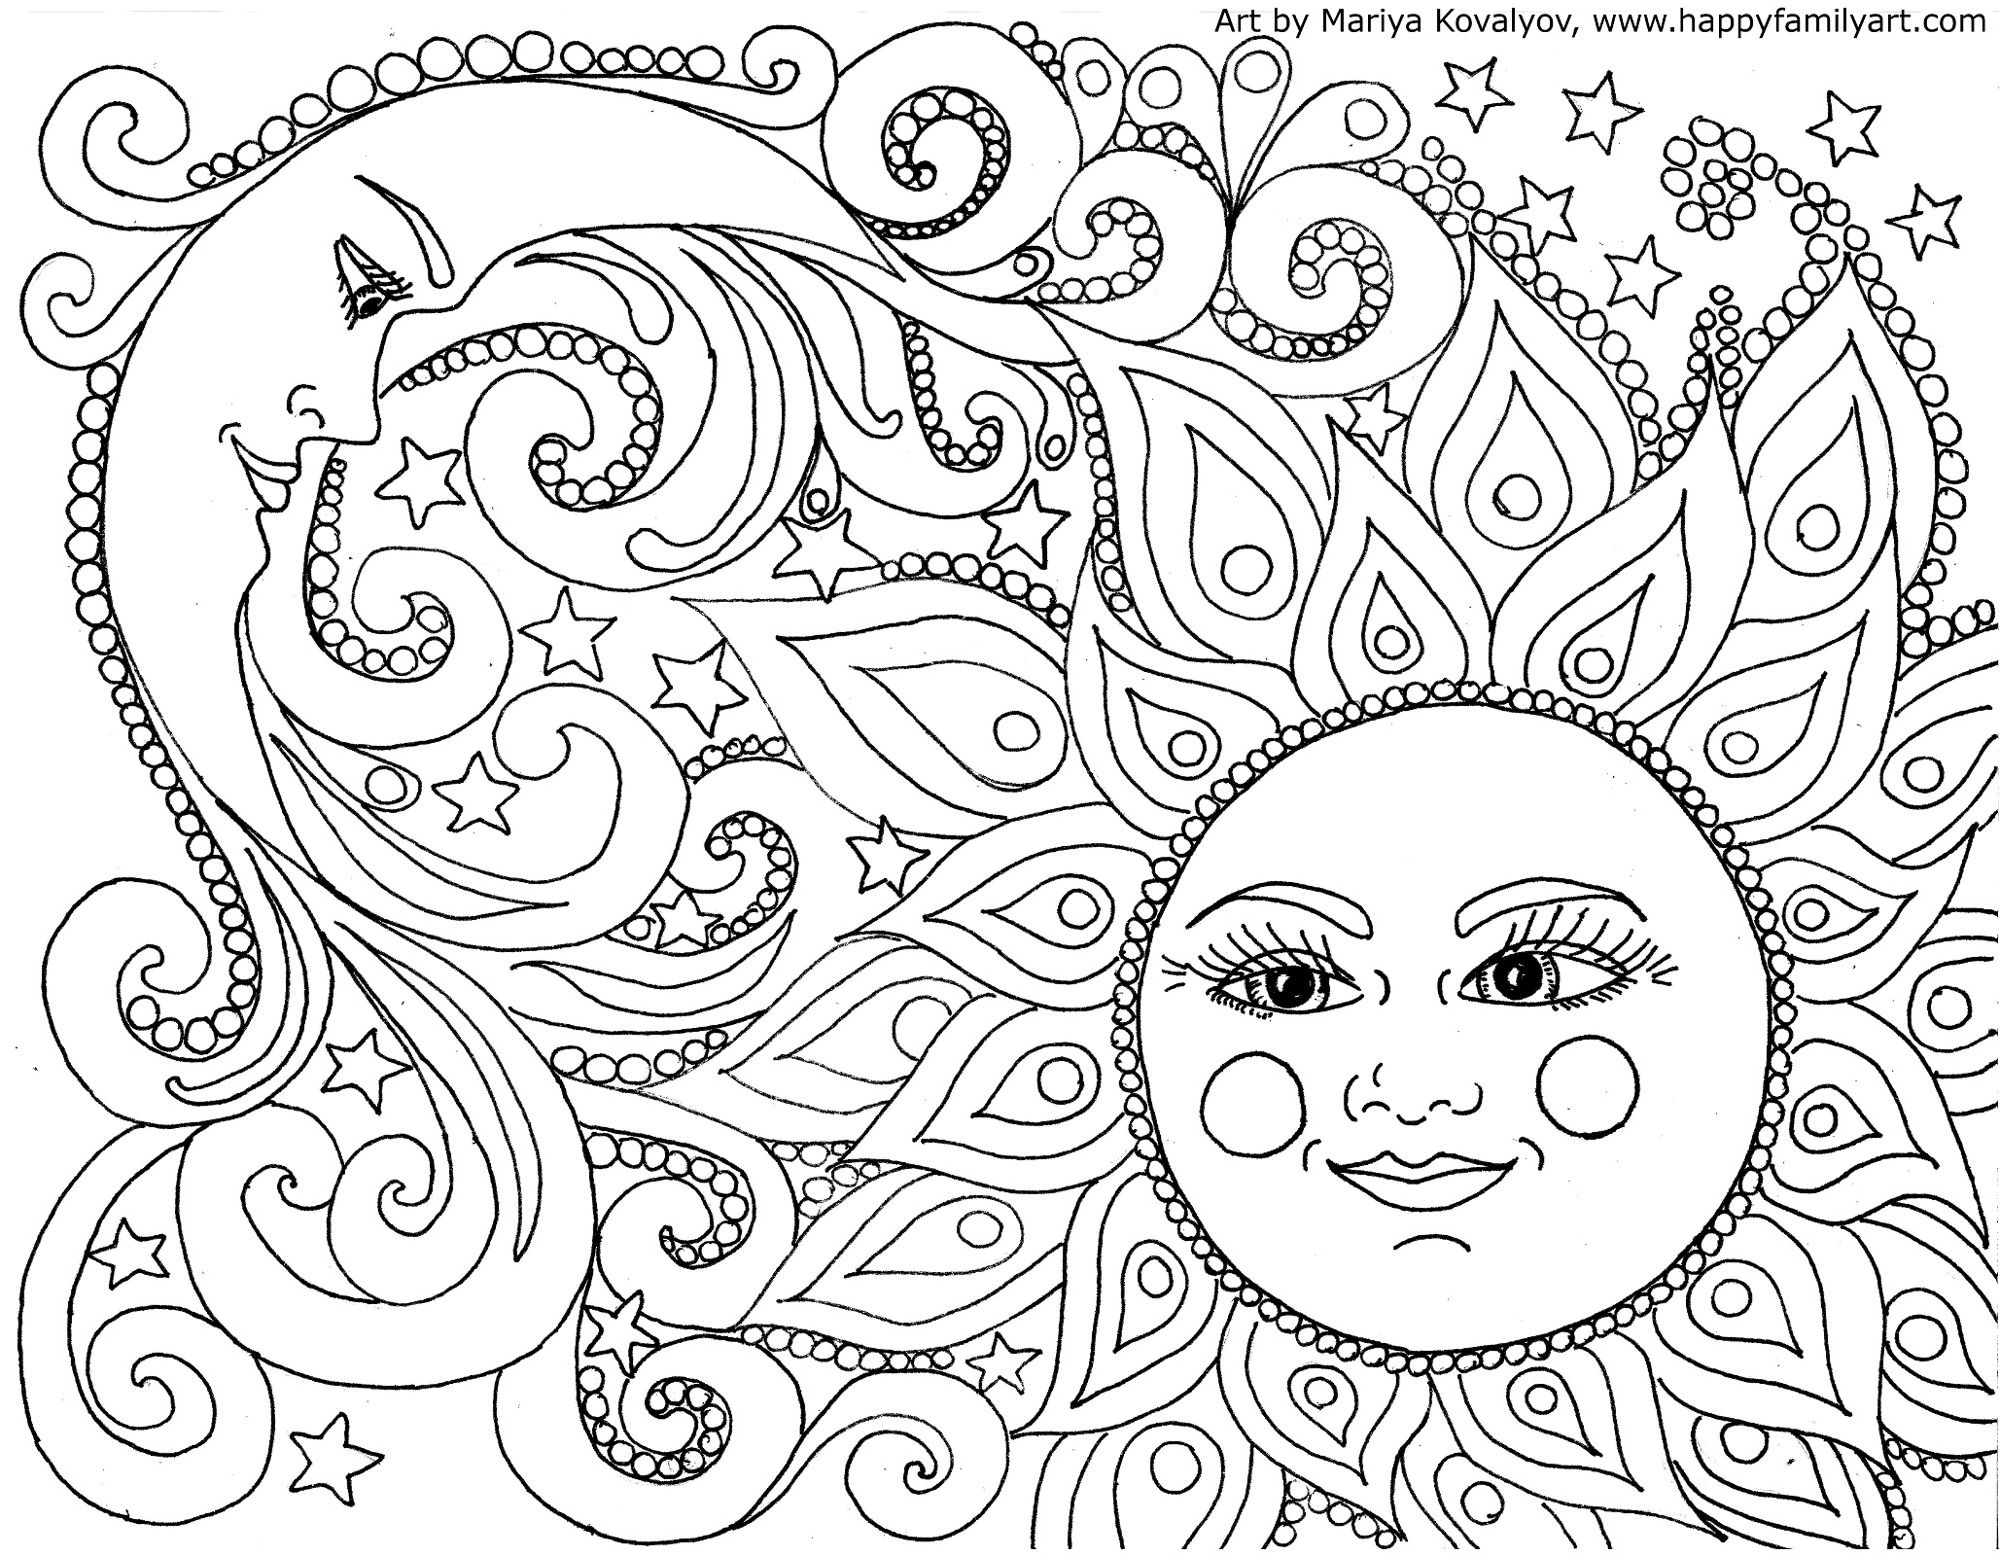 Coloring Pages Make Your Own Coloring Pages Online 1000 ideas about adult coloring pages on pinterest printable i made many great fun and original color your heart out